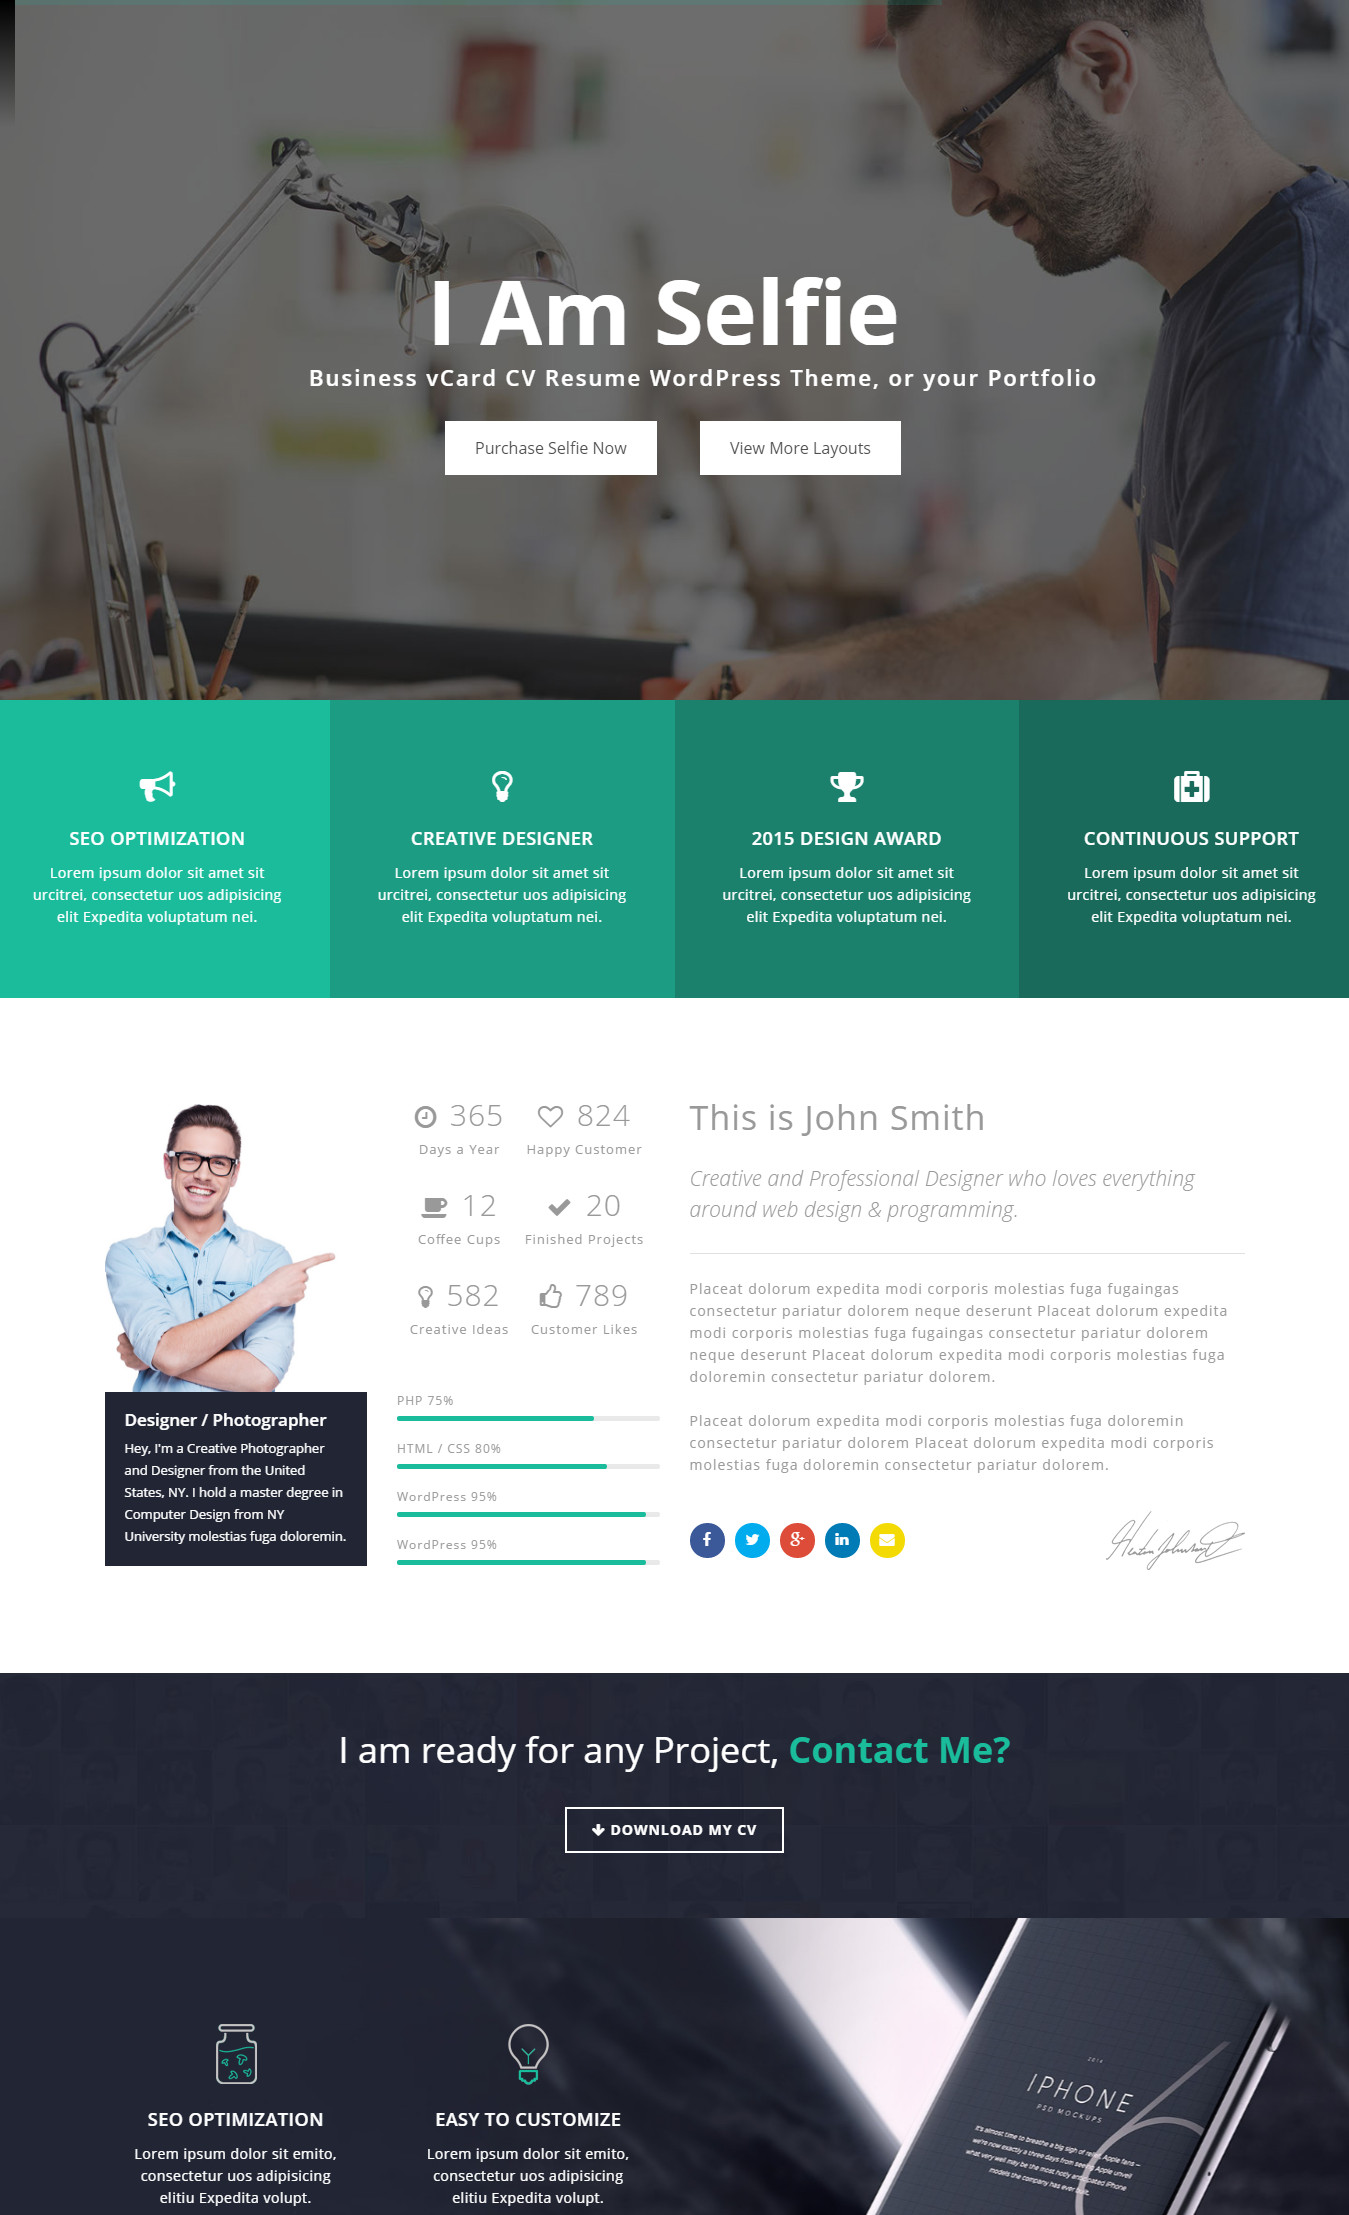 Selfie   Personal VCard CV Portfolio WP Theme  Resume Website Design